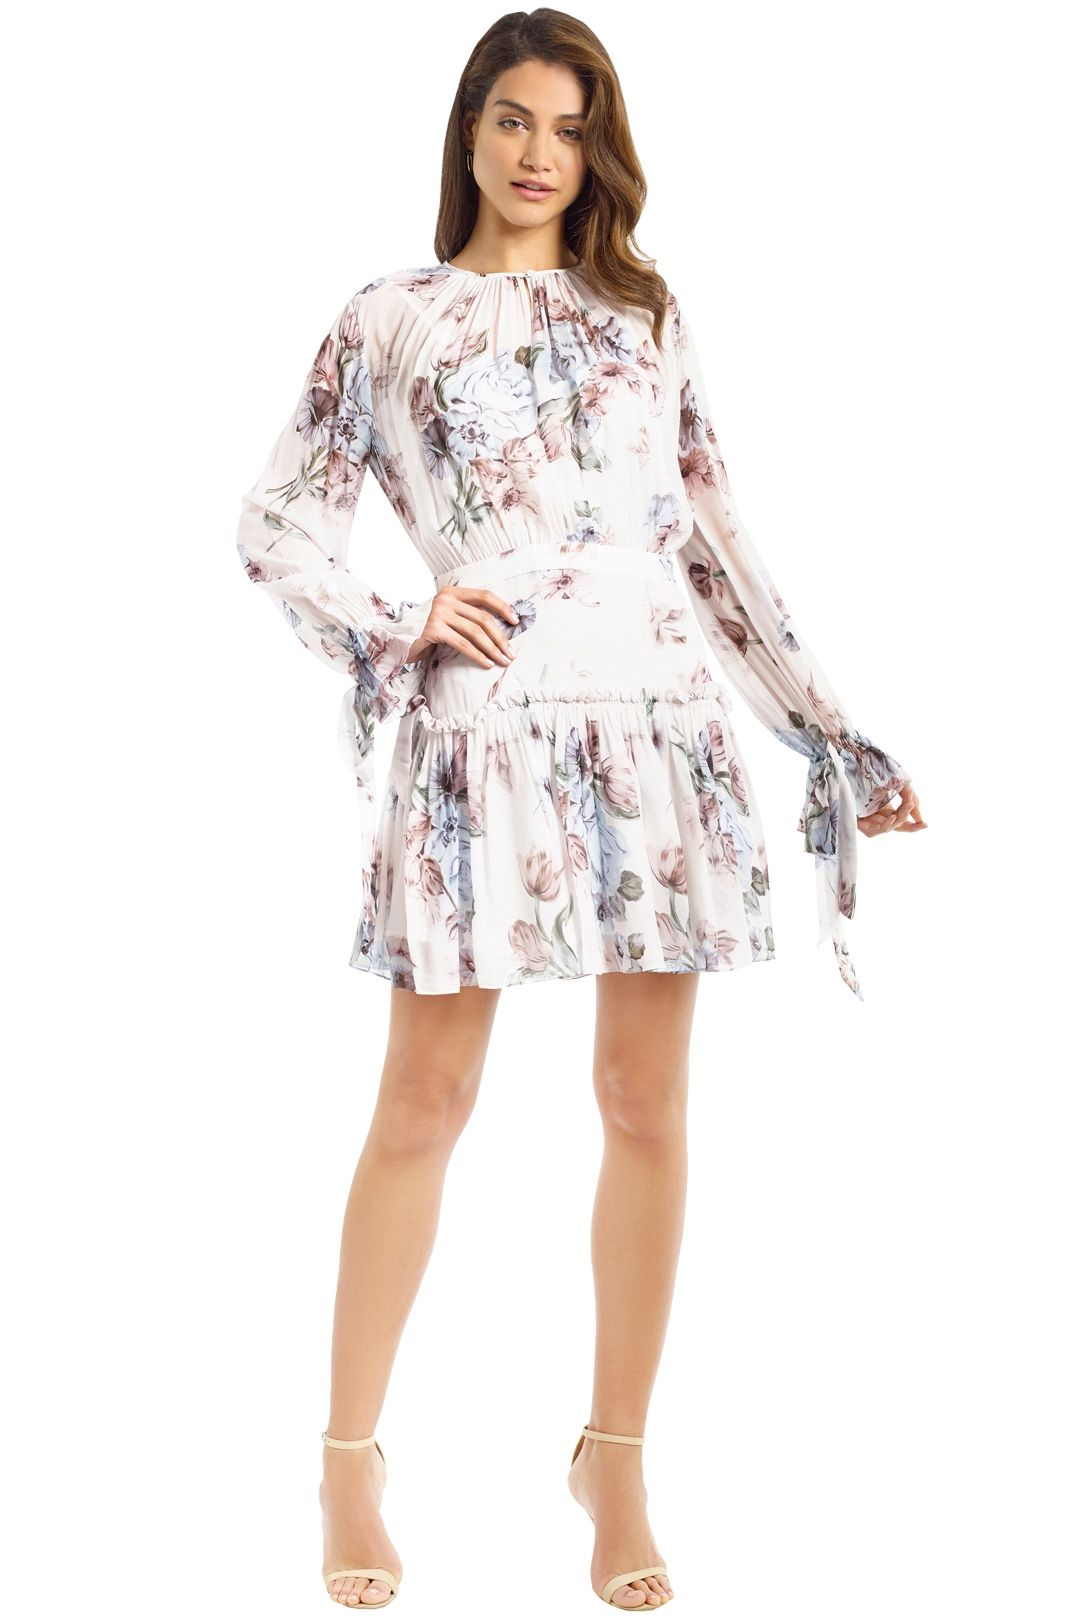 Lover - Posy Georgette Mini Dress - Ivory - Front